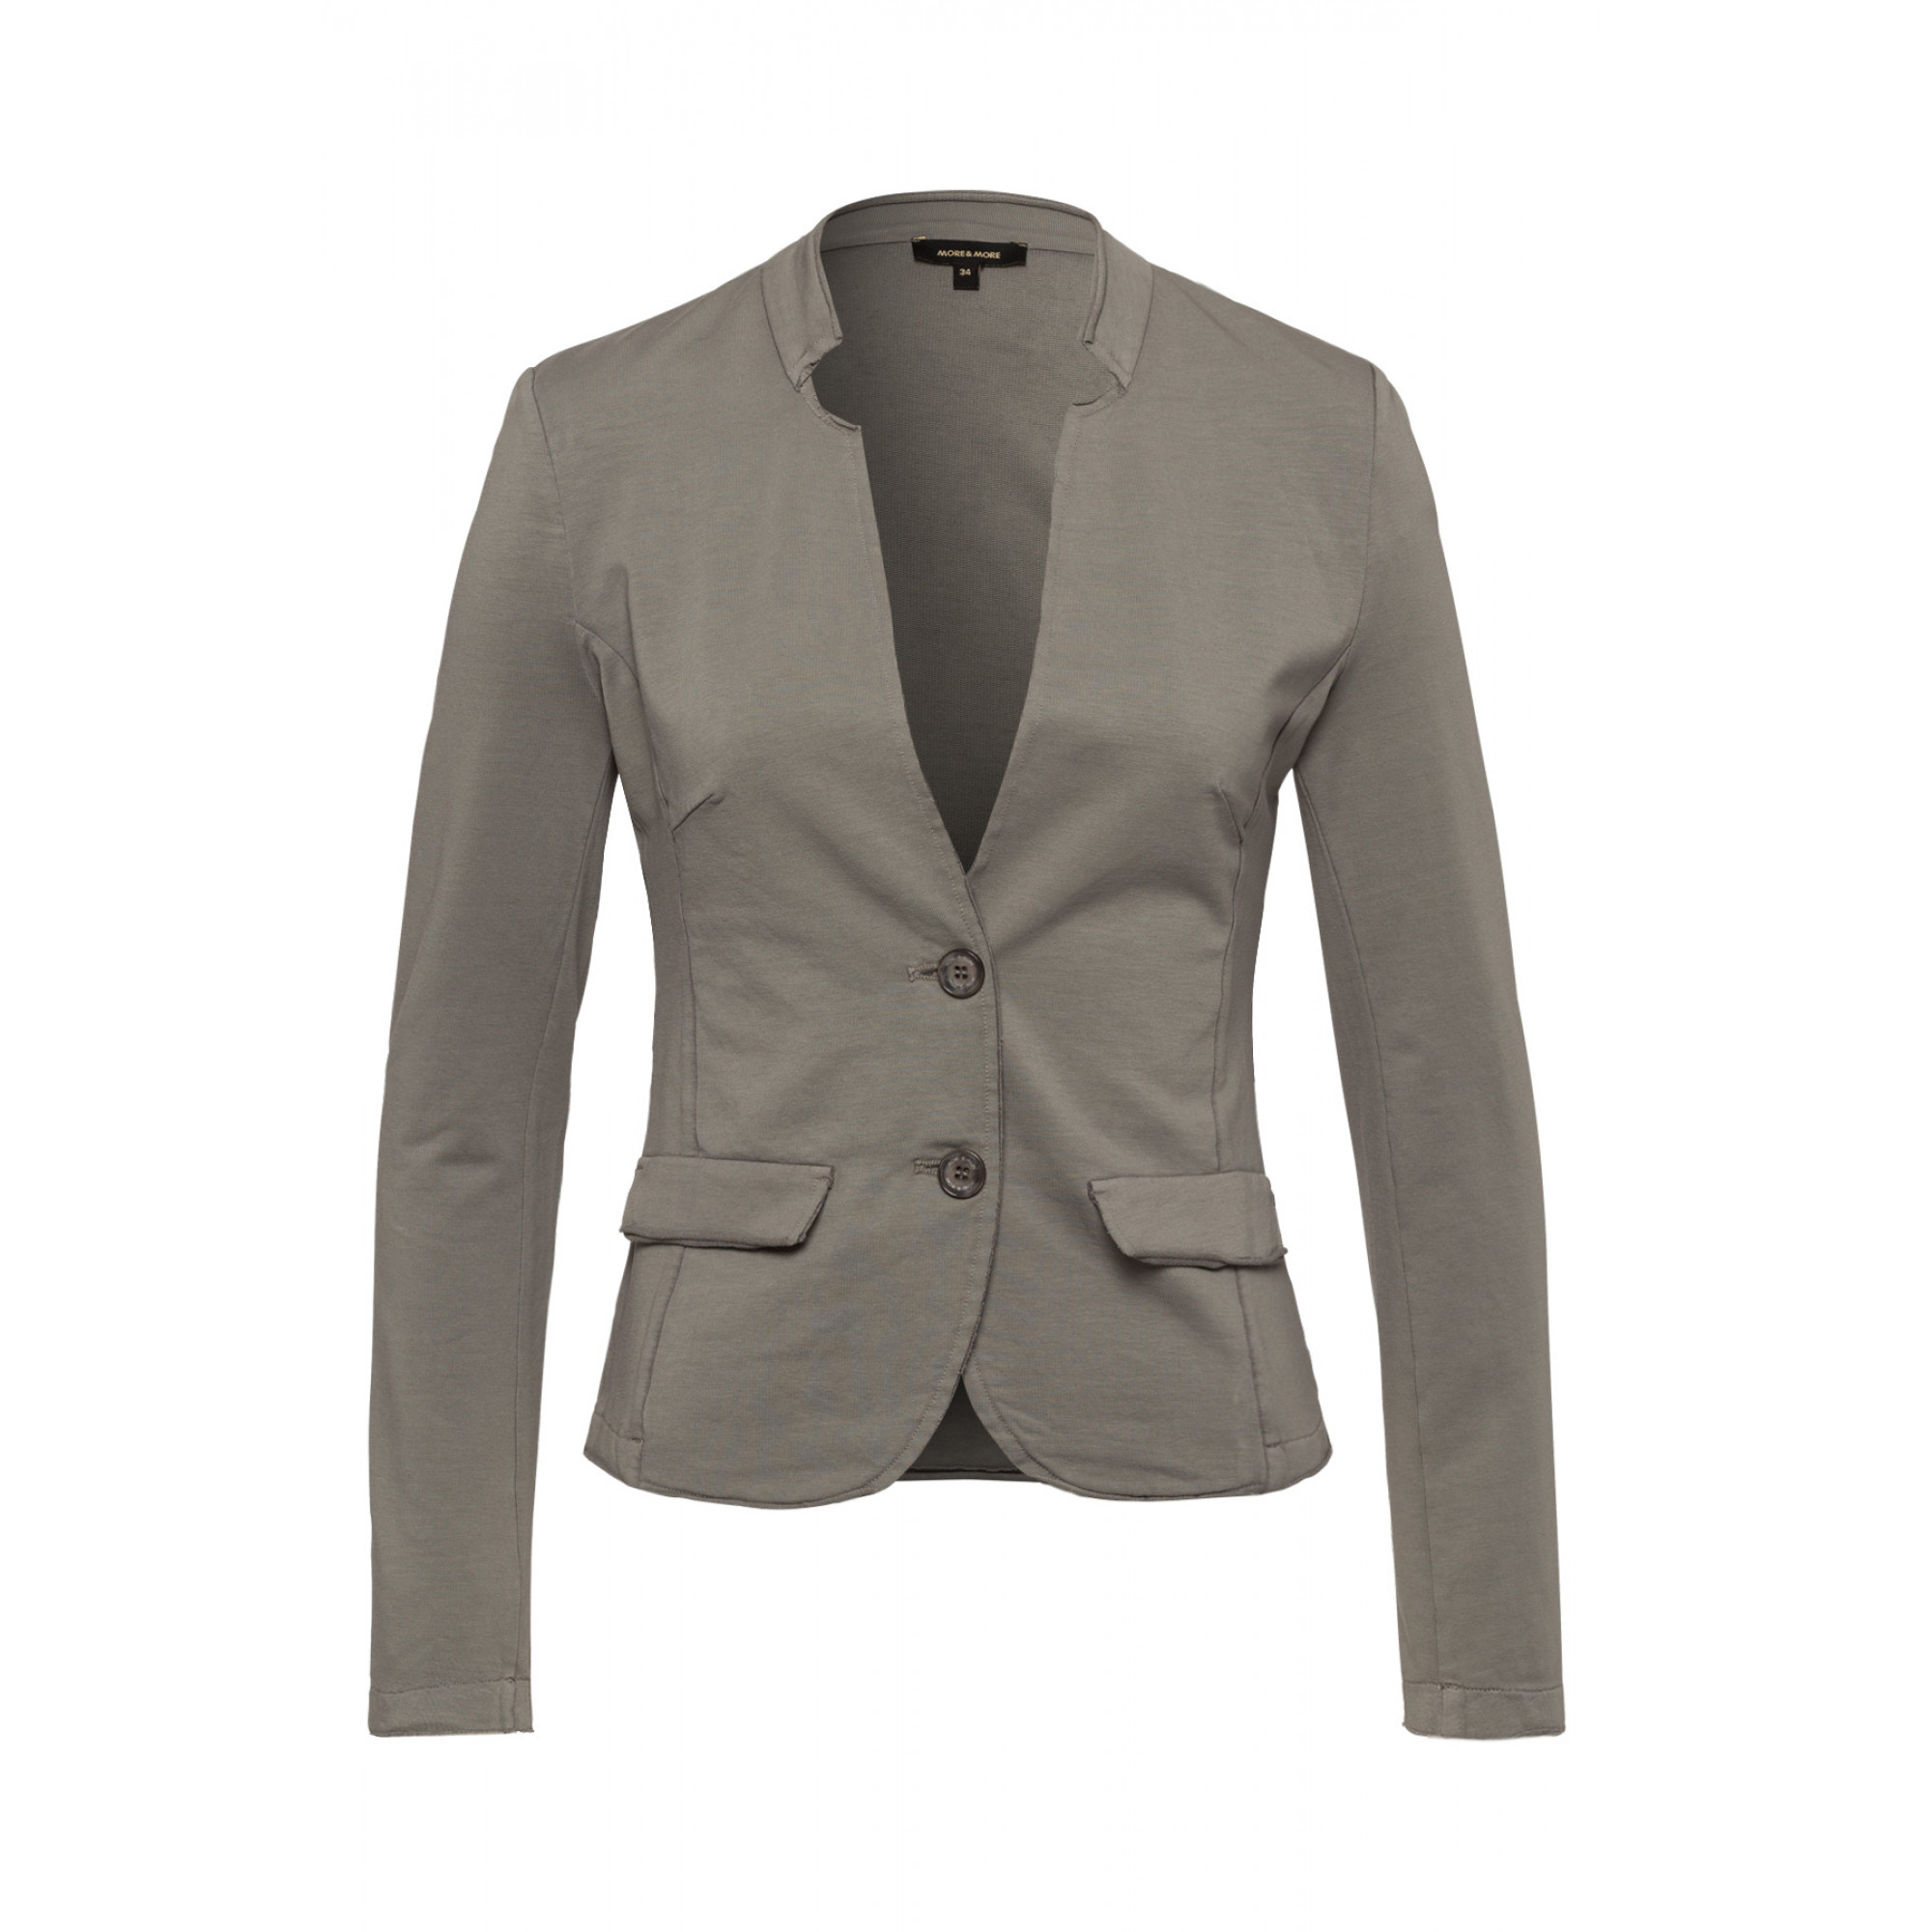 Sweatblazer, grau 91966606-0746 1